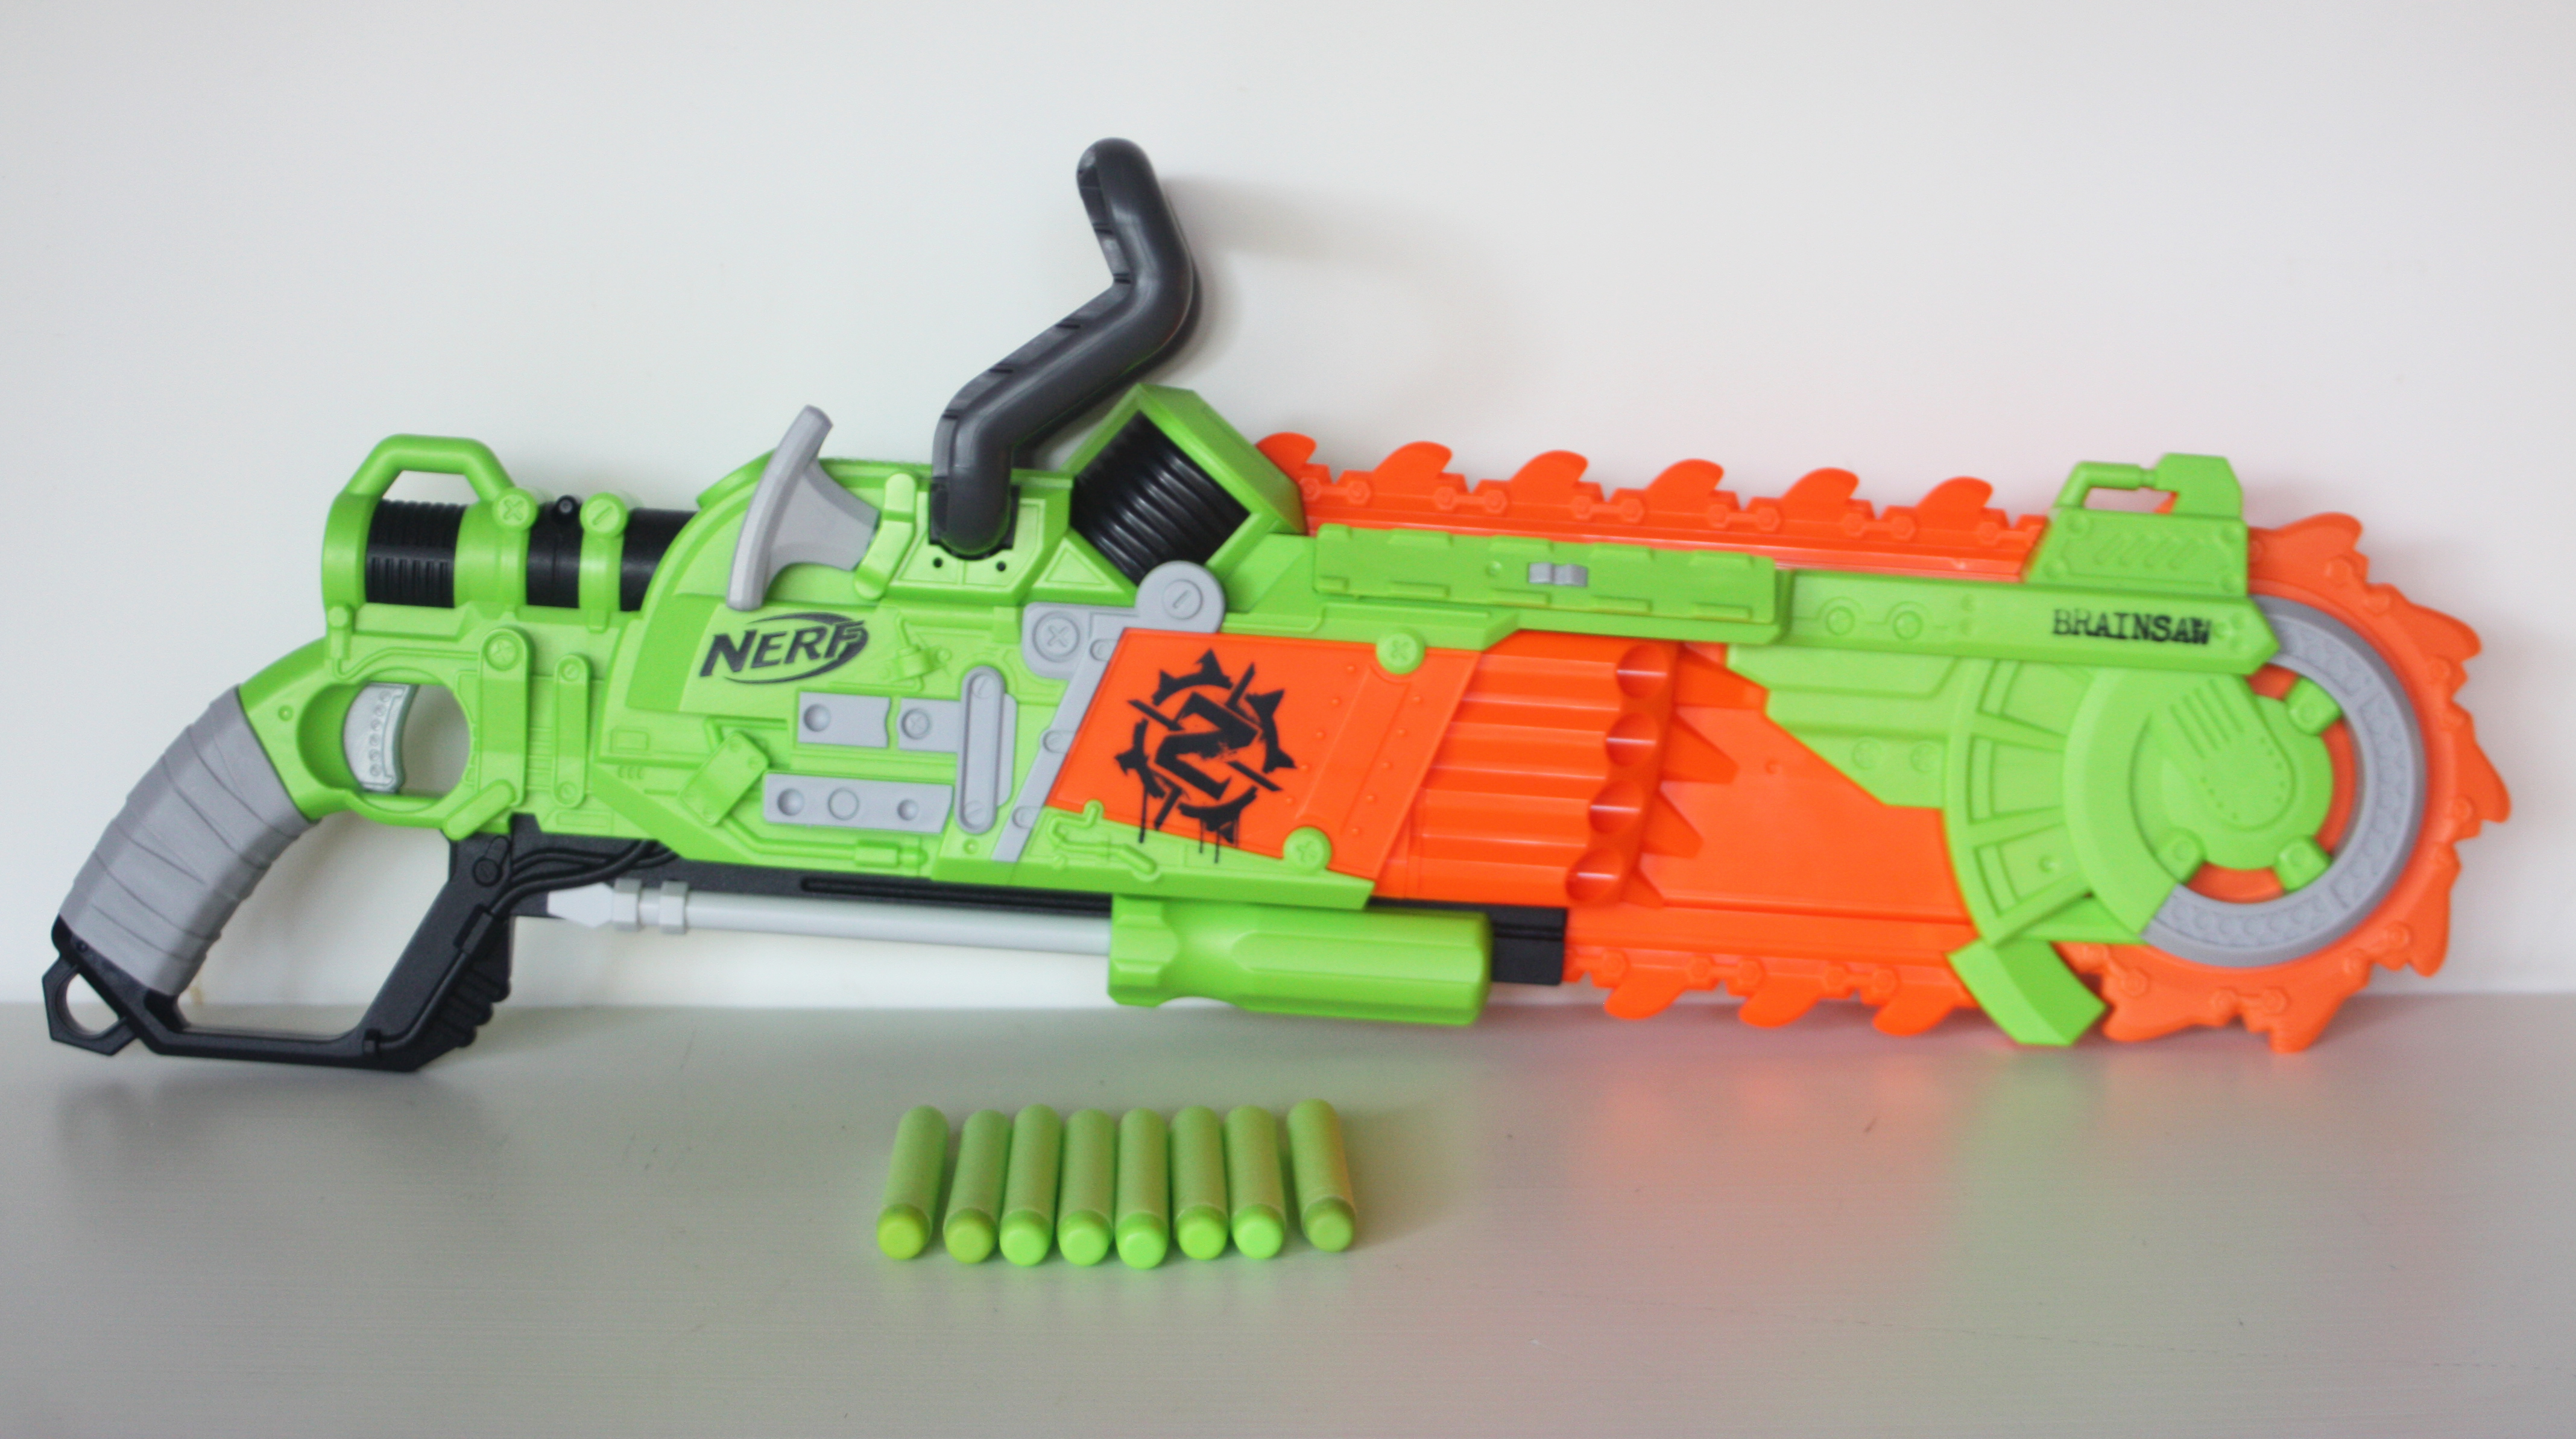 As mentioned above, the Brainsaw certainly has an intimidating look, after  all, chainsaws are menacing. I love the detailing Hasbro has put into this  ...